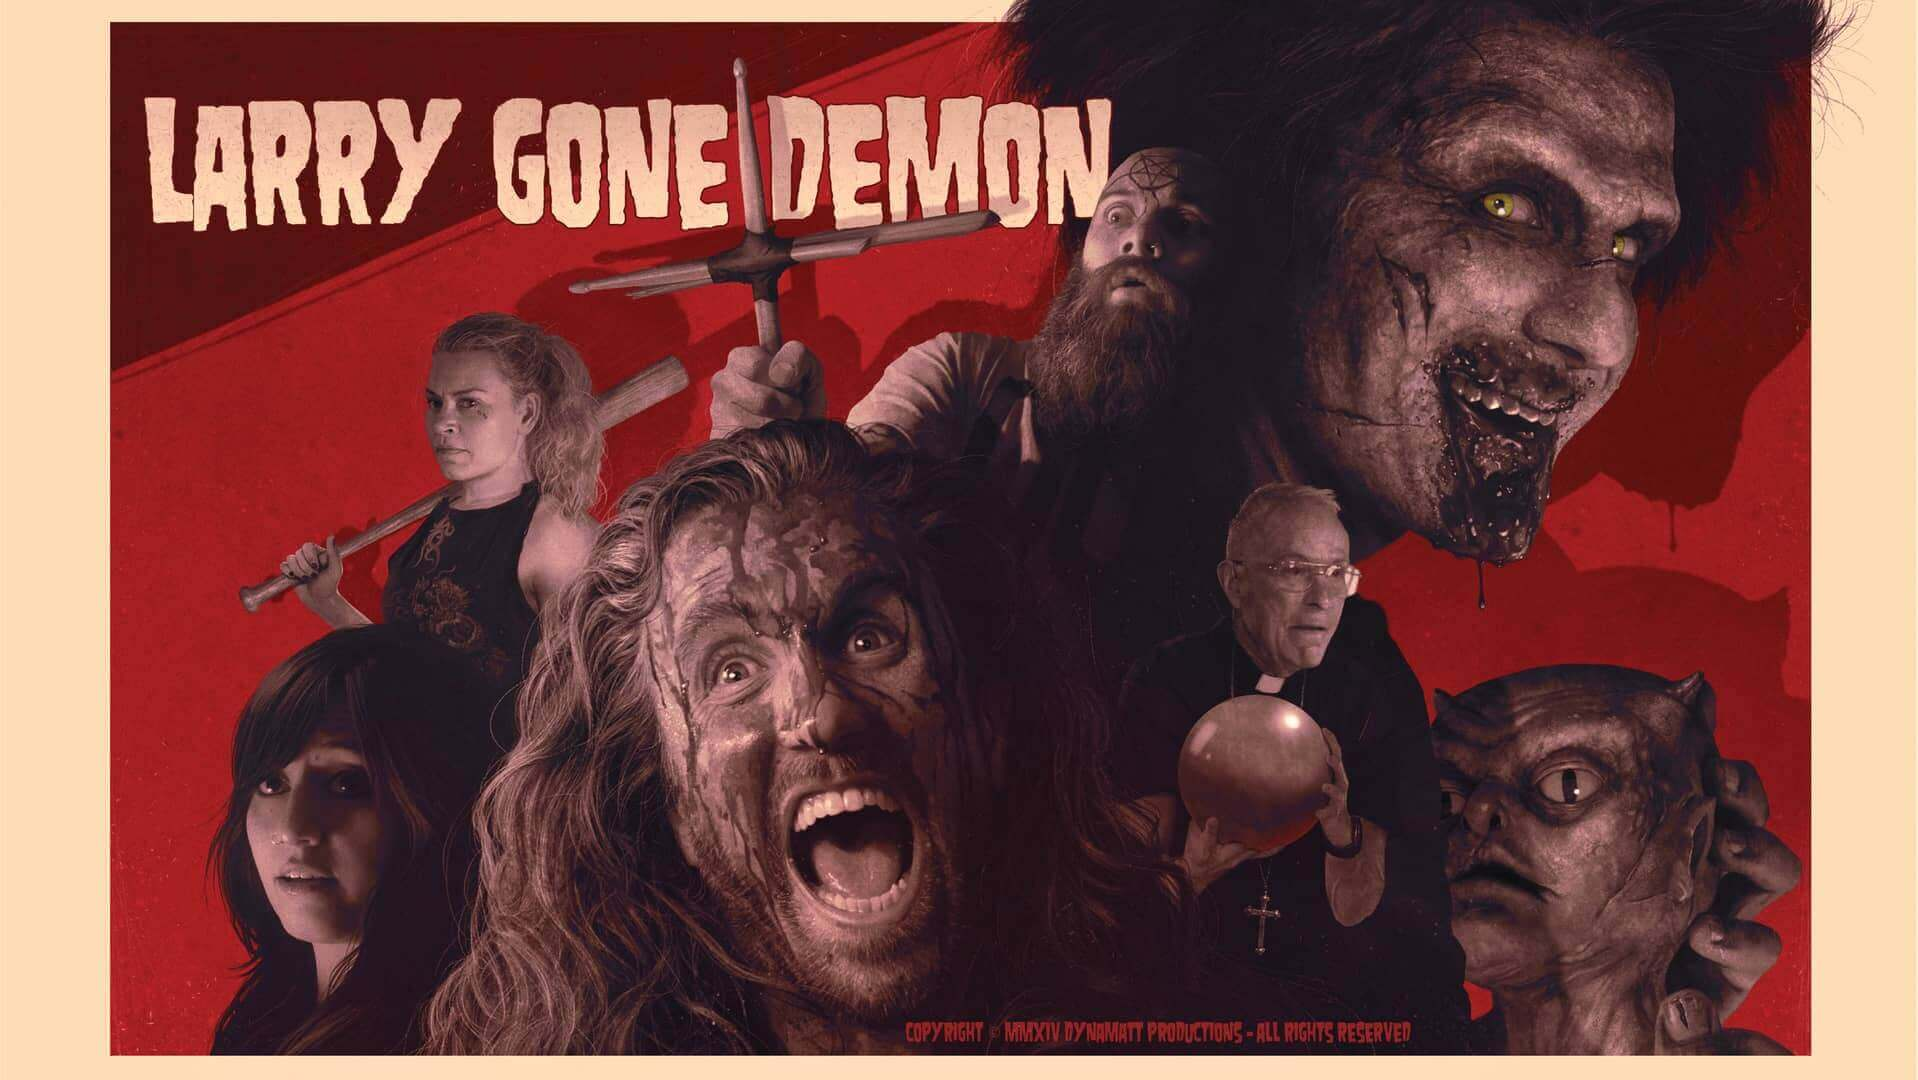 larry-gone-demon-1-1